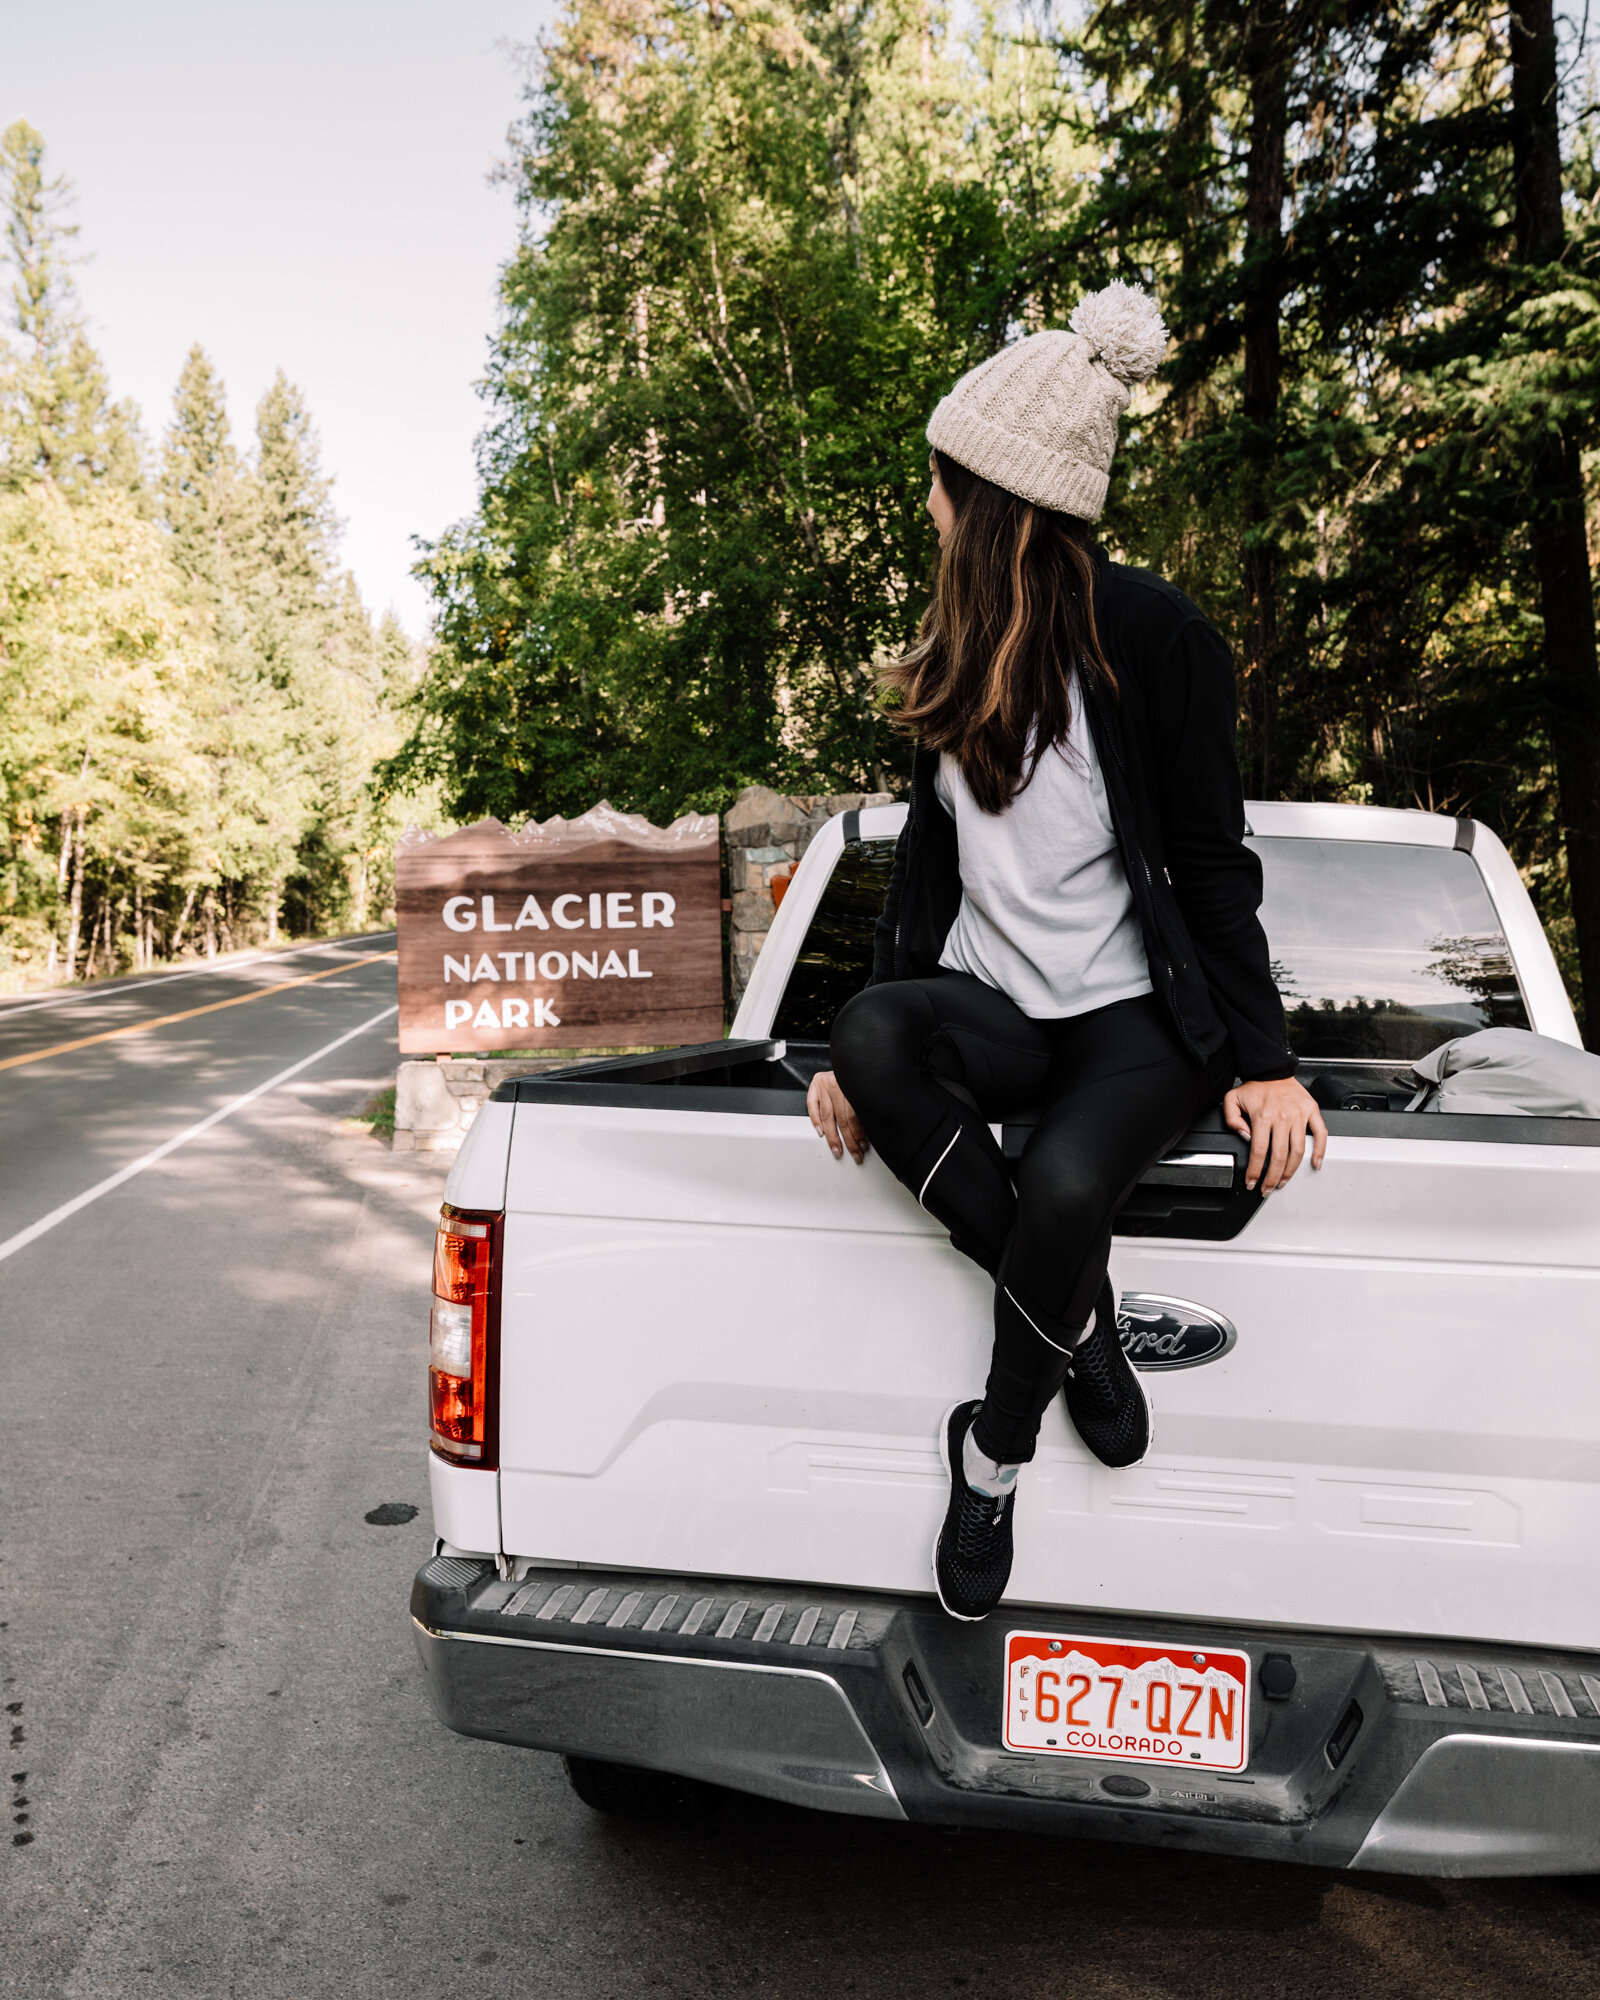 Rachel Off Duty: Woman Sitting on a Truck in Glacier National Park